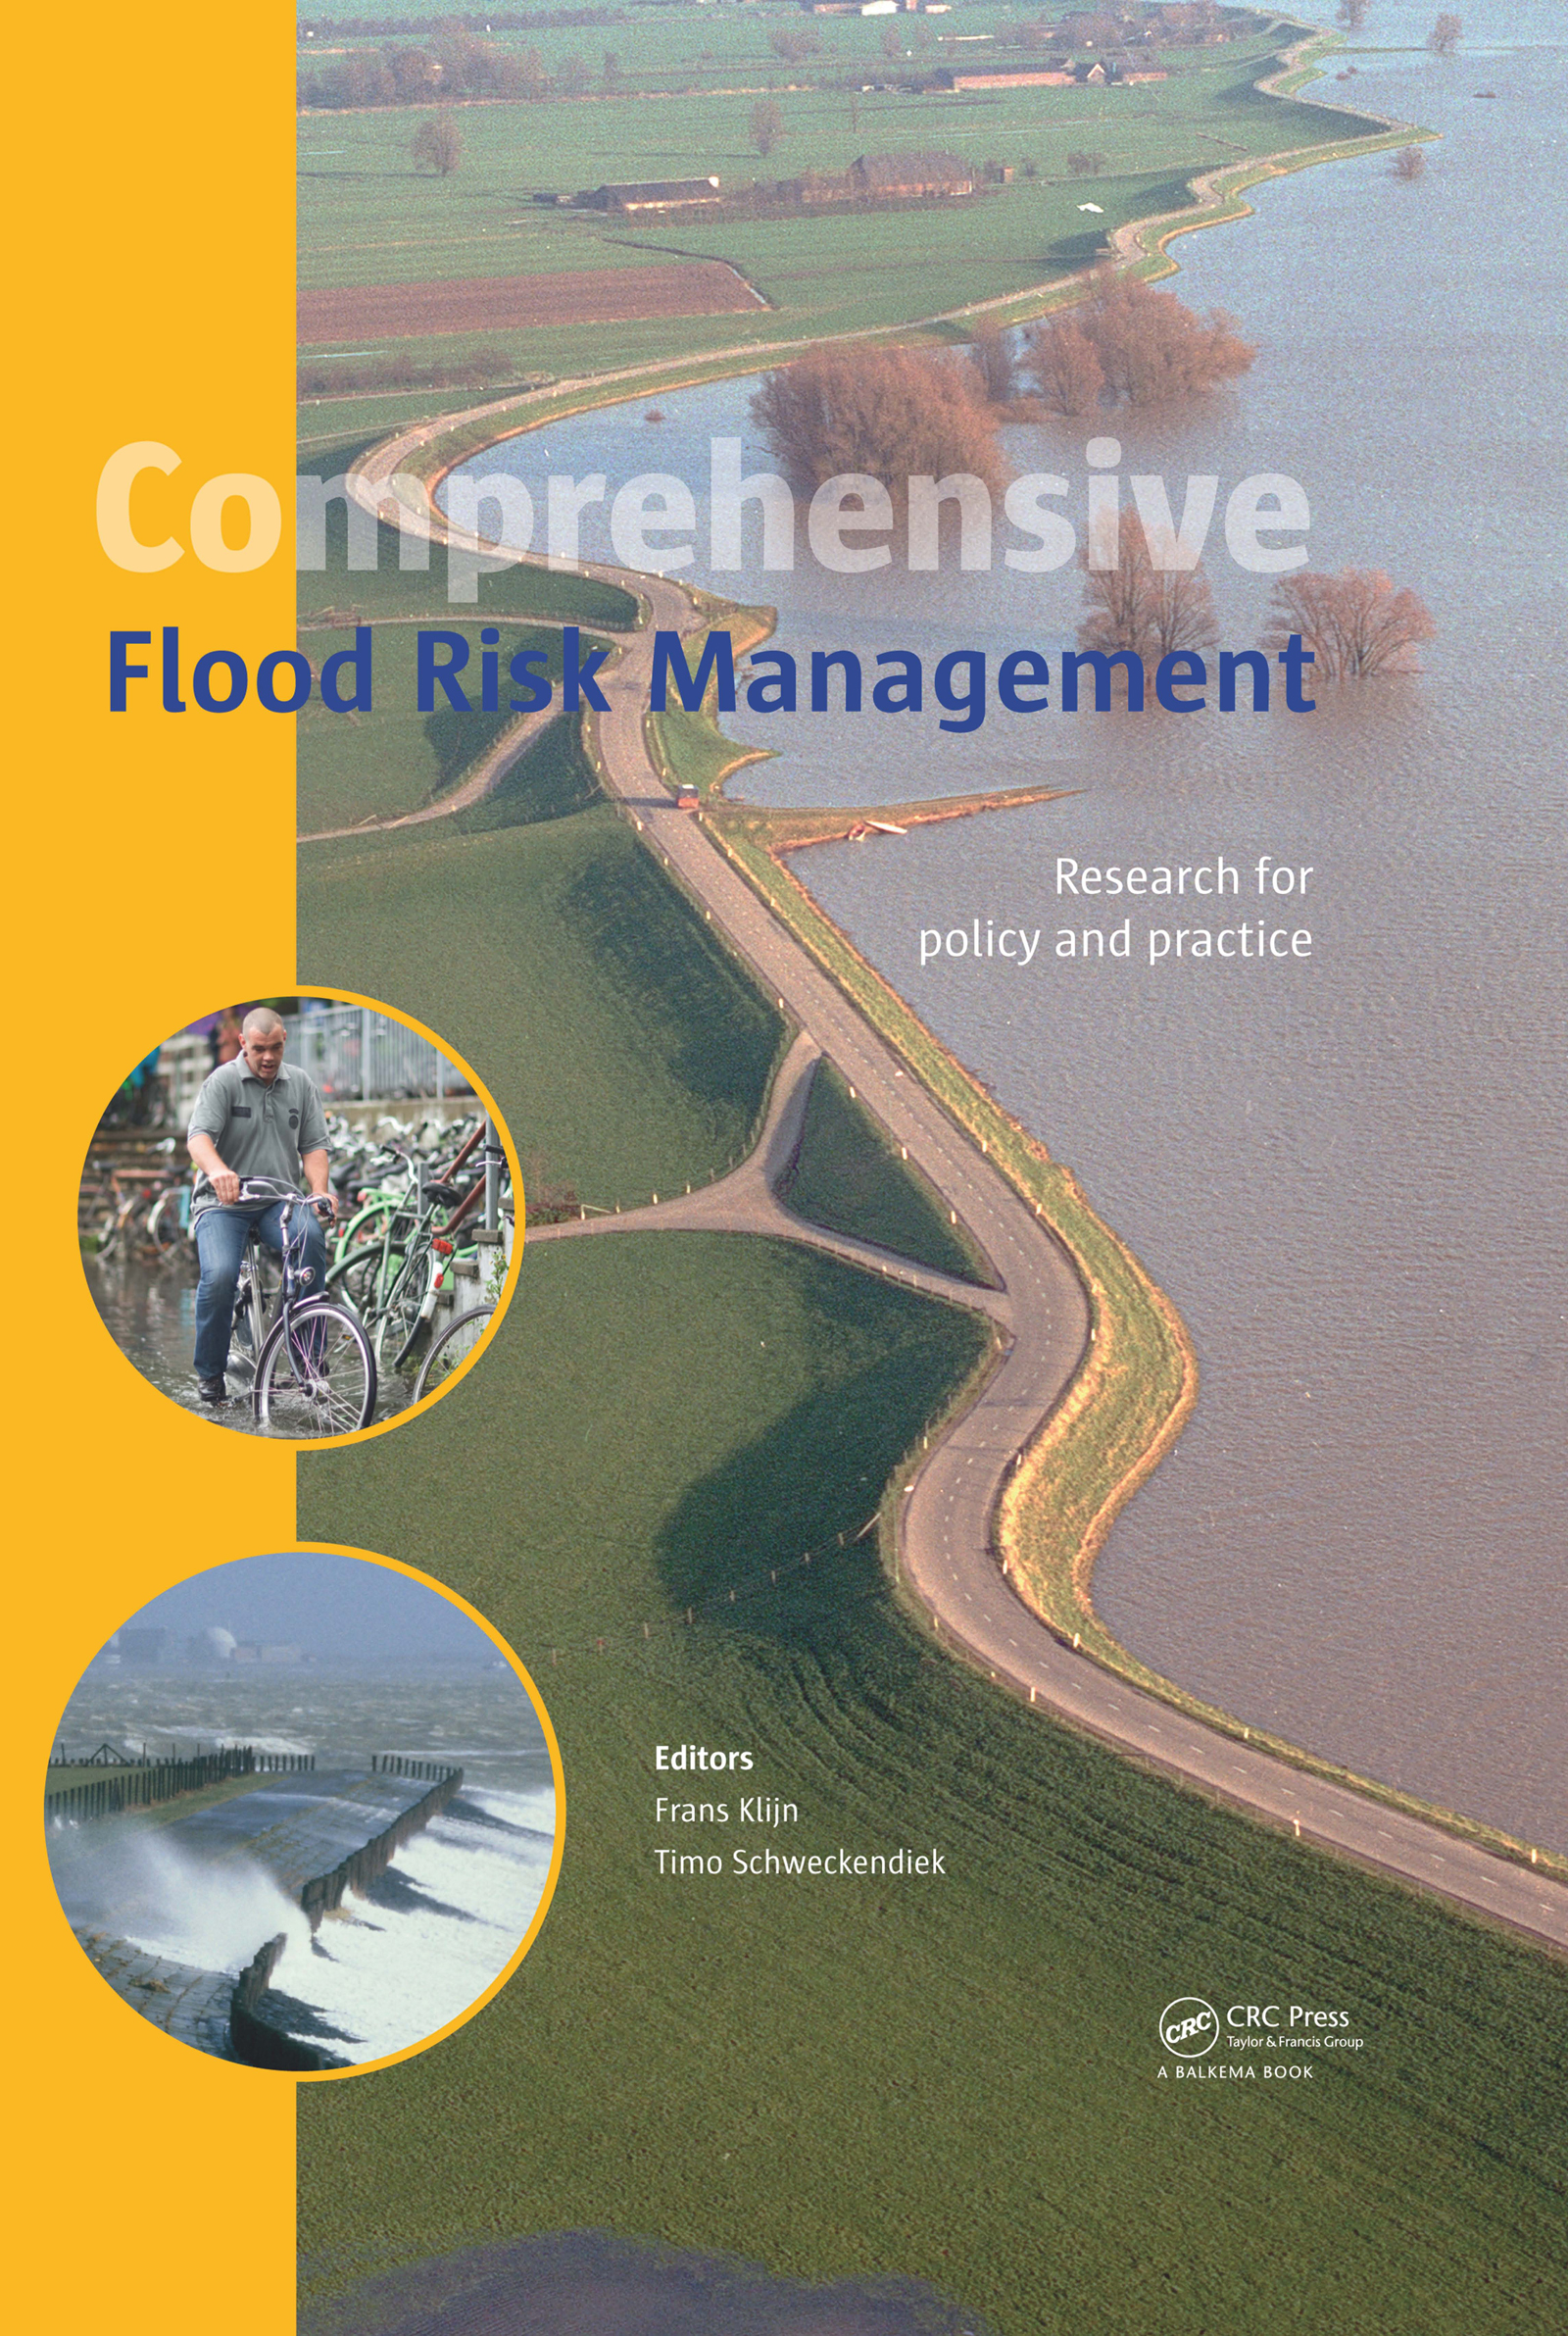 Comprehensive Flood Risk Management: Research for Policy and Practice (Pack - Book and CD) book cover